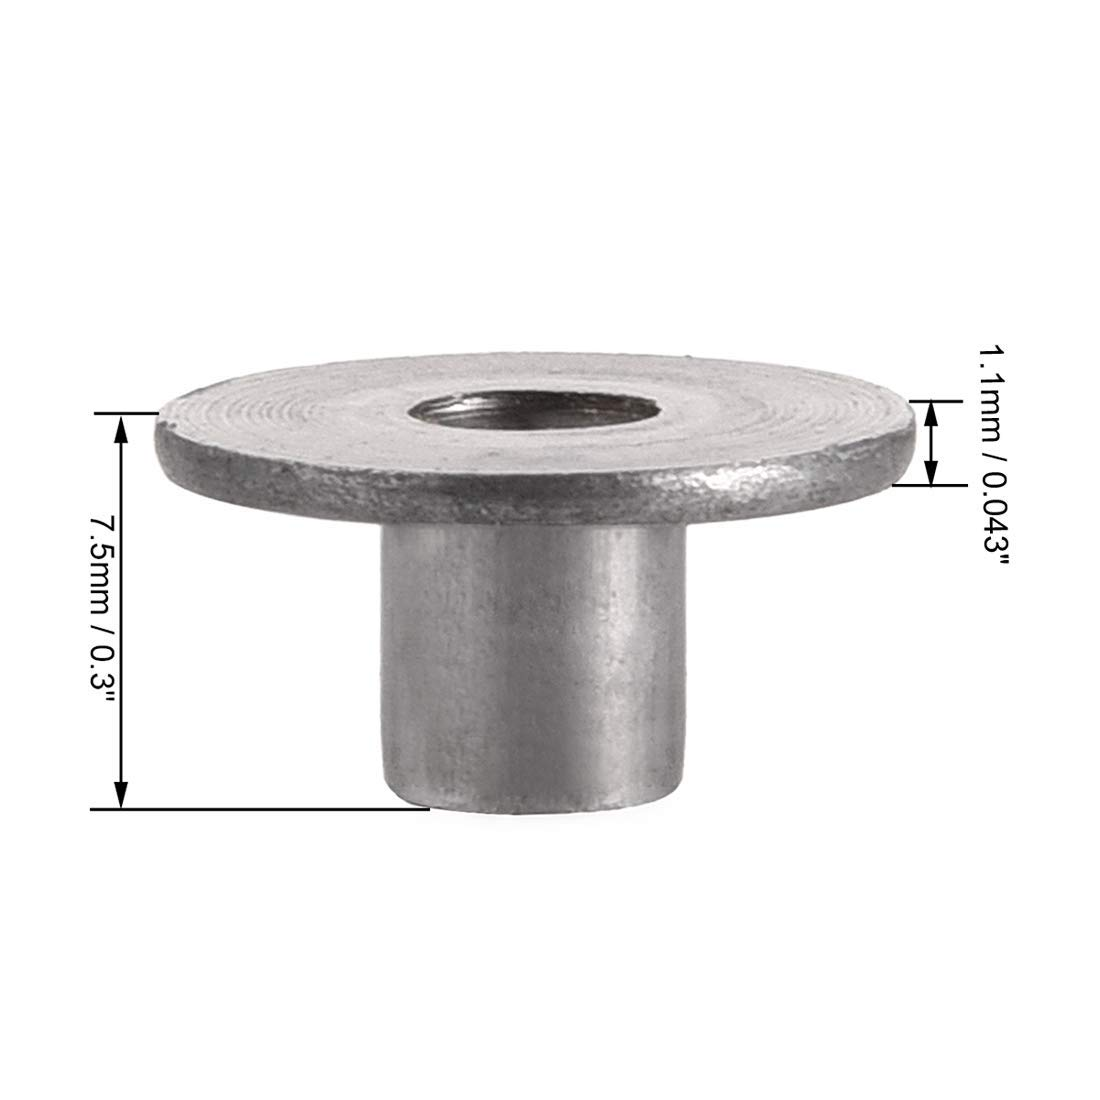 3//16 DIAMETER X 1-1//4 LENGTH SOLID STEEL ROUND HEAD RIVET PACK OF 1//2 POUND - APPROXIMATELY 42 PIECES PLAIN FINISH,